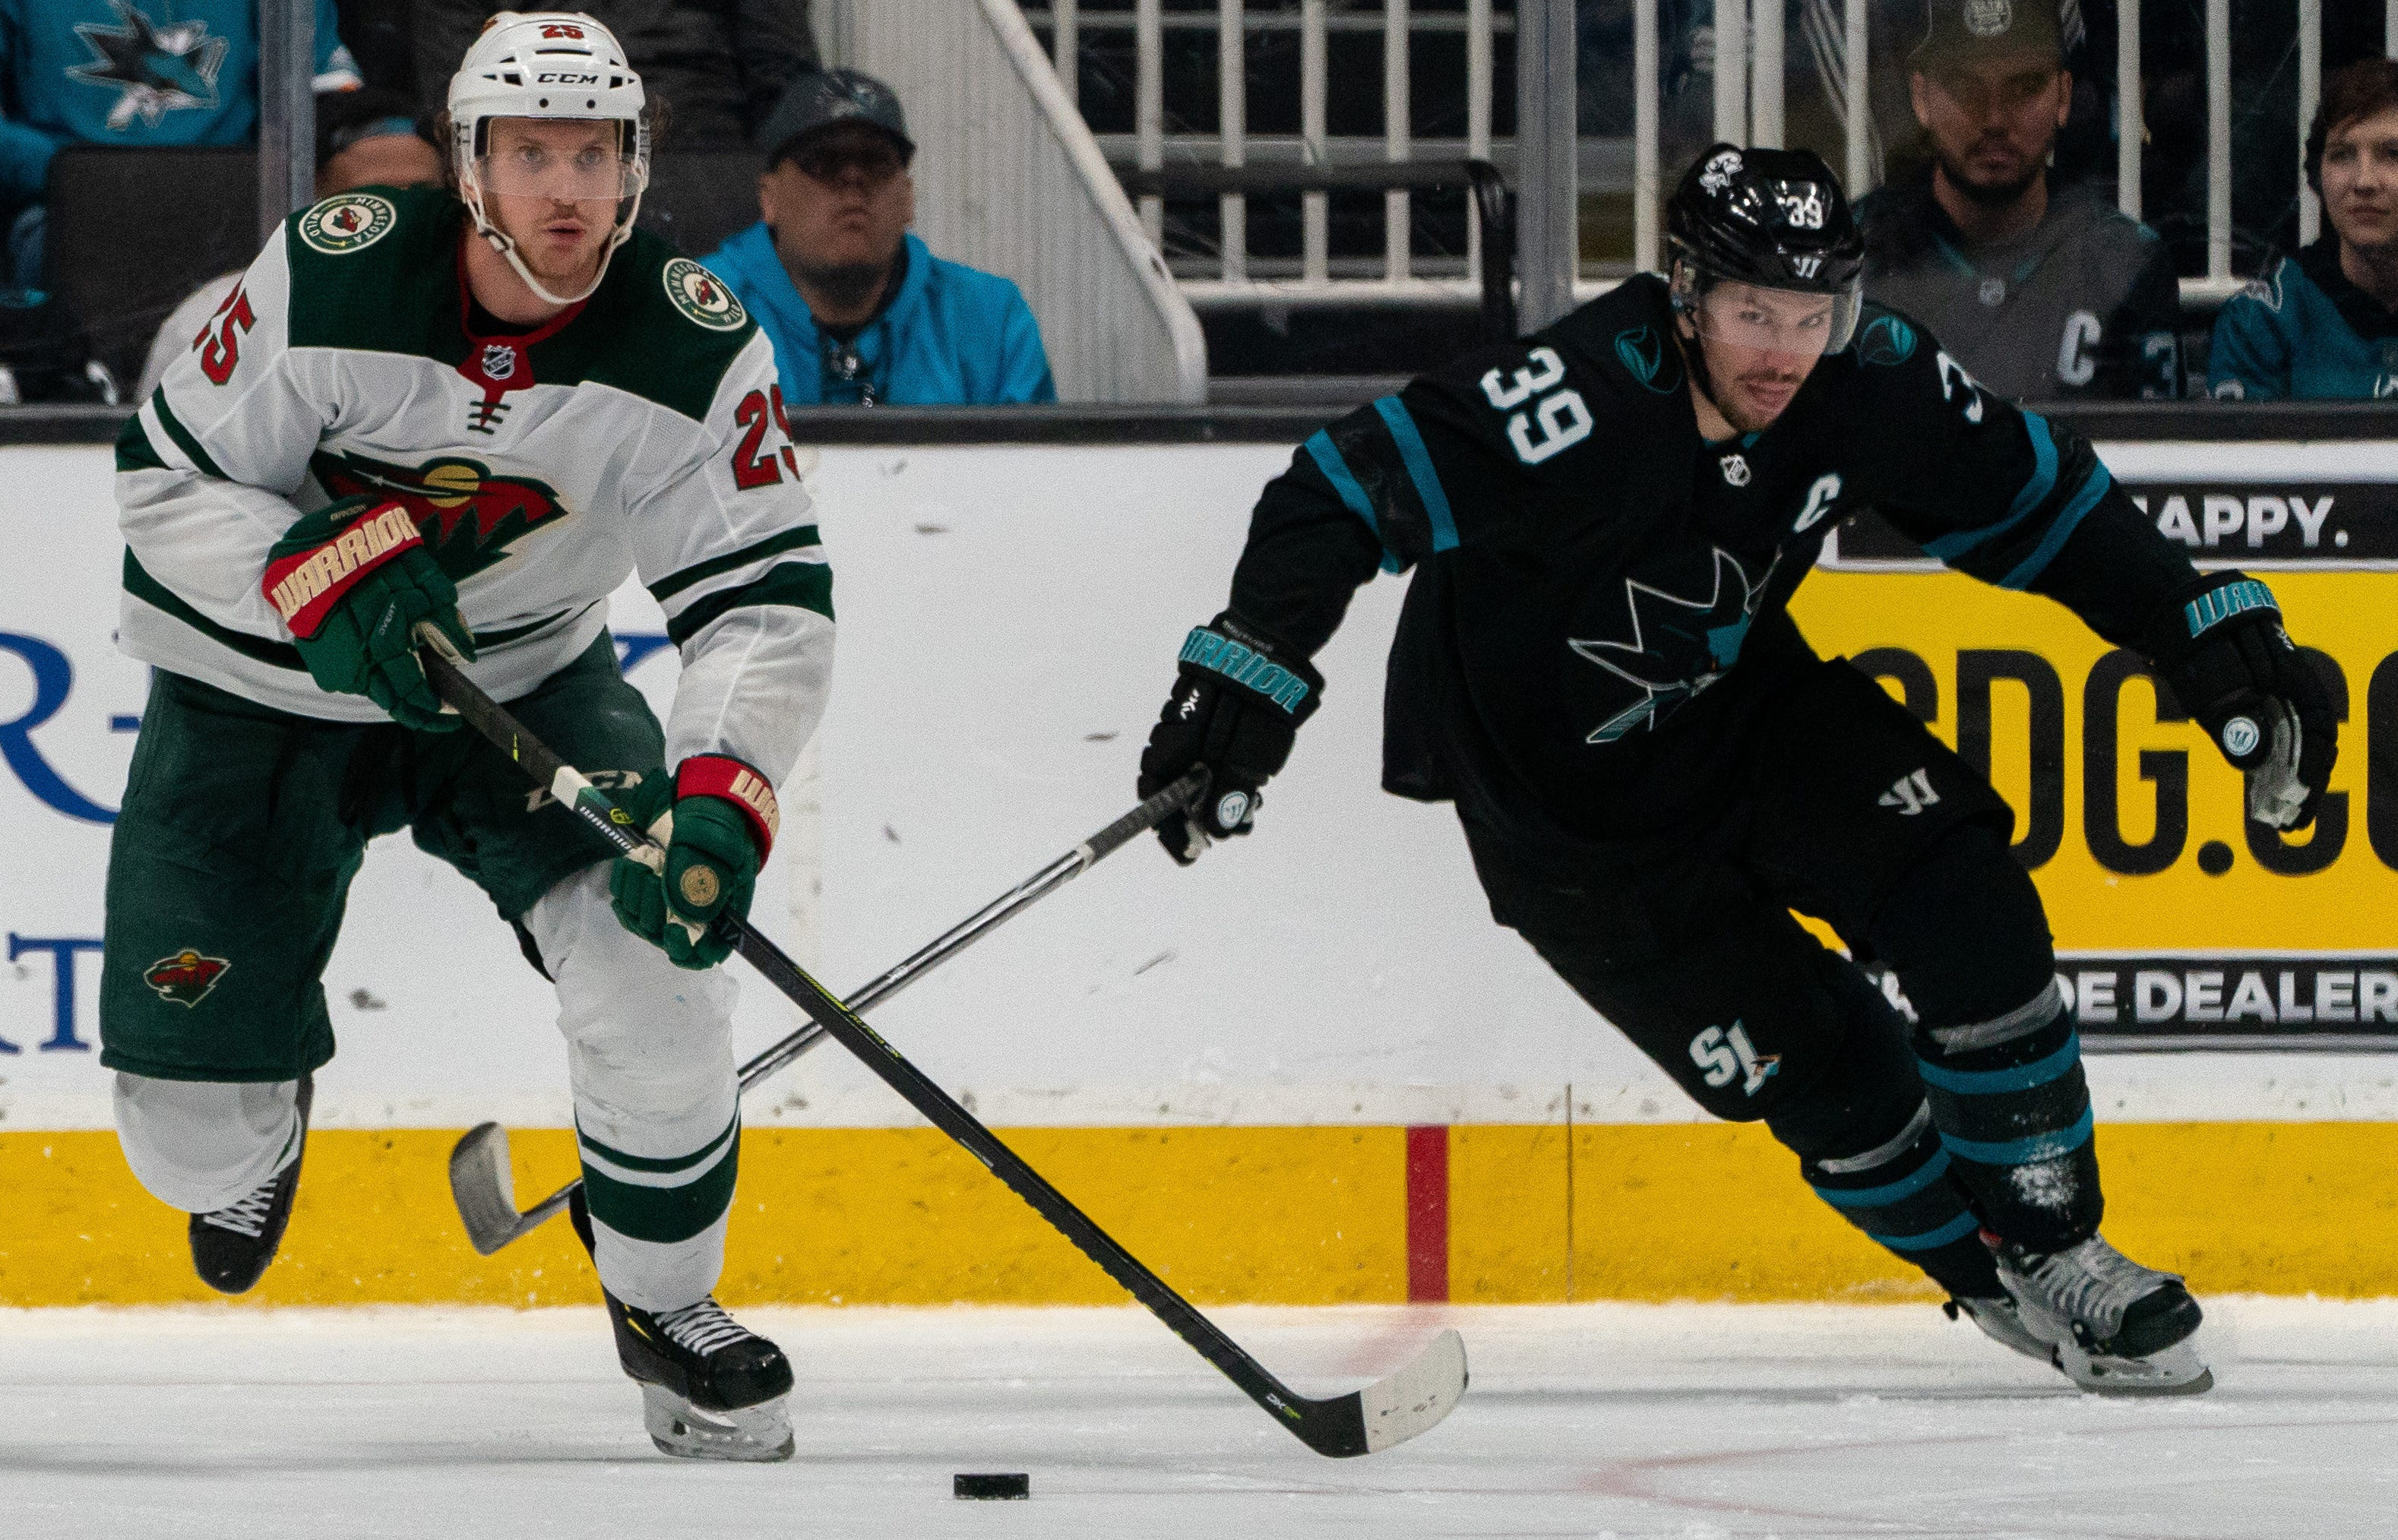 The San Jose Sharks played host to the Minnesota Wild on March 5, 2020, despite Santa Clara County public health officials recommending large events be cancelled.